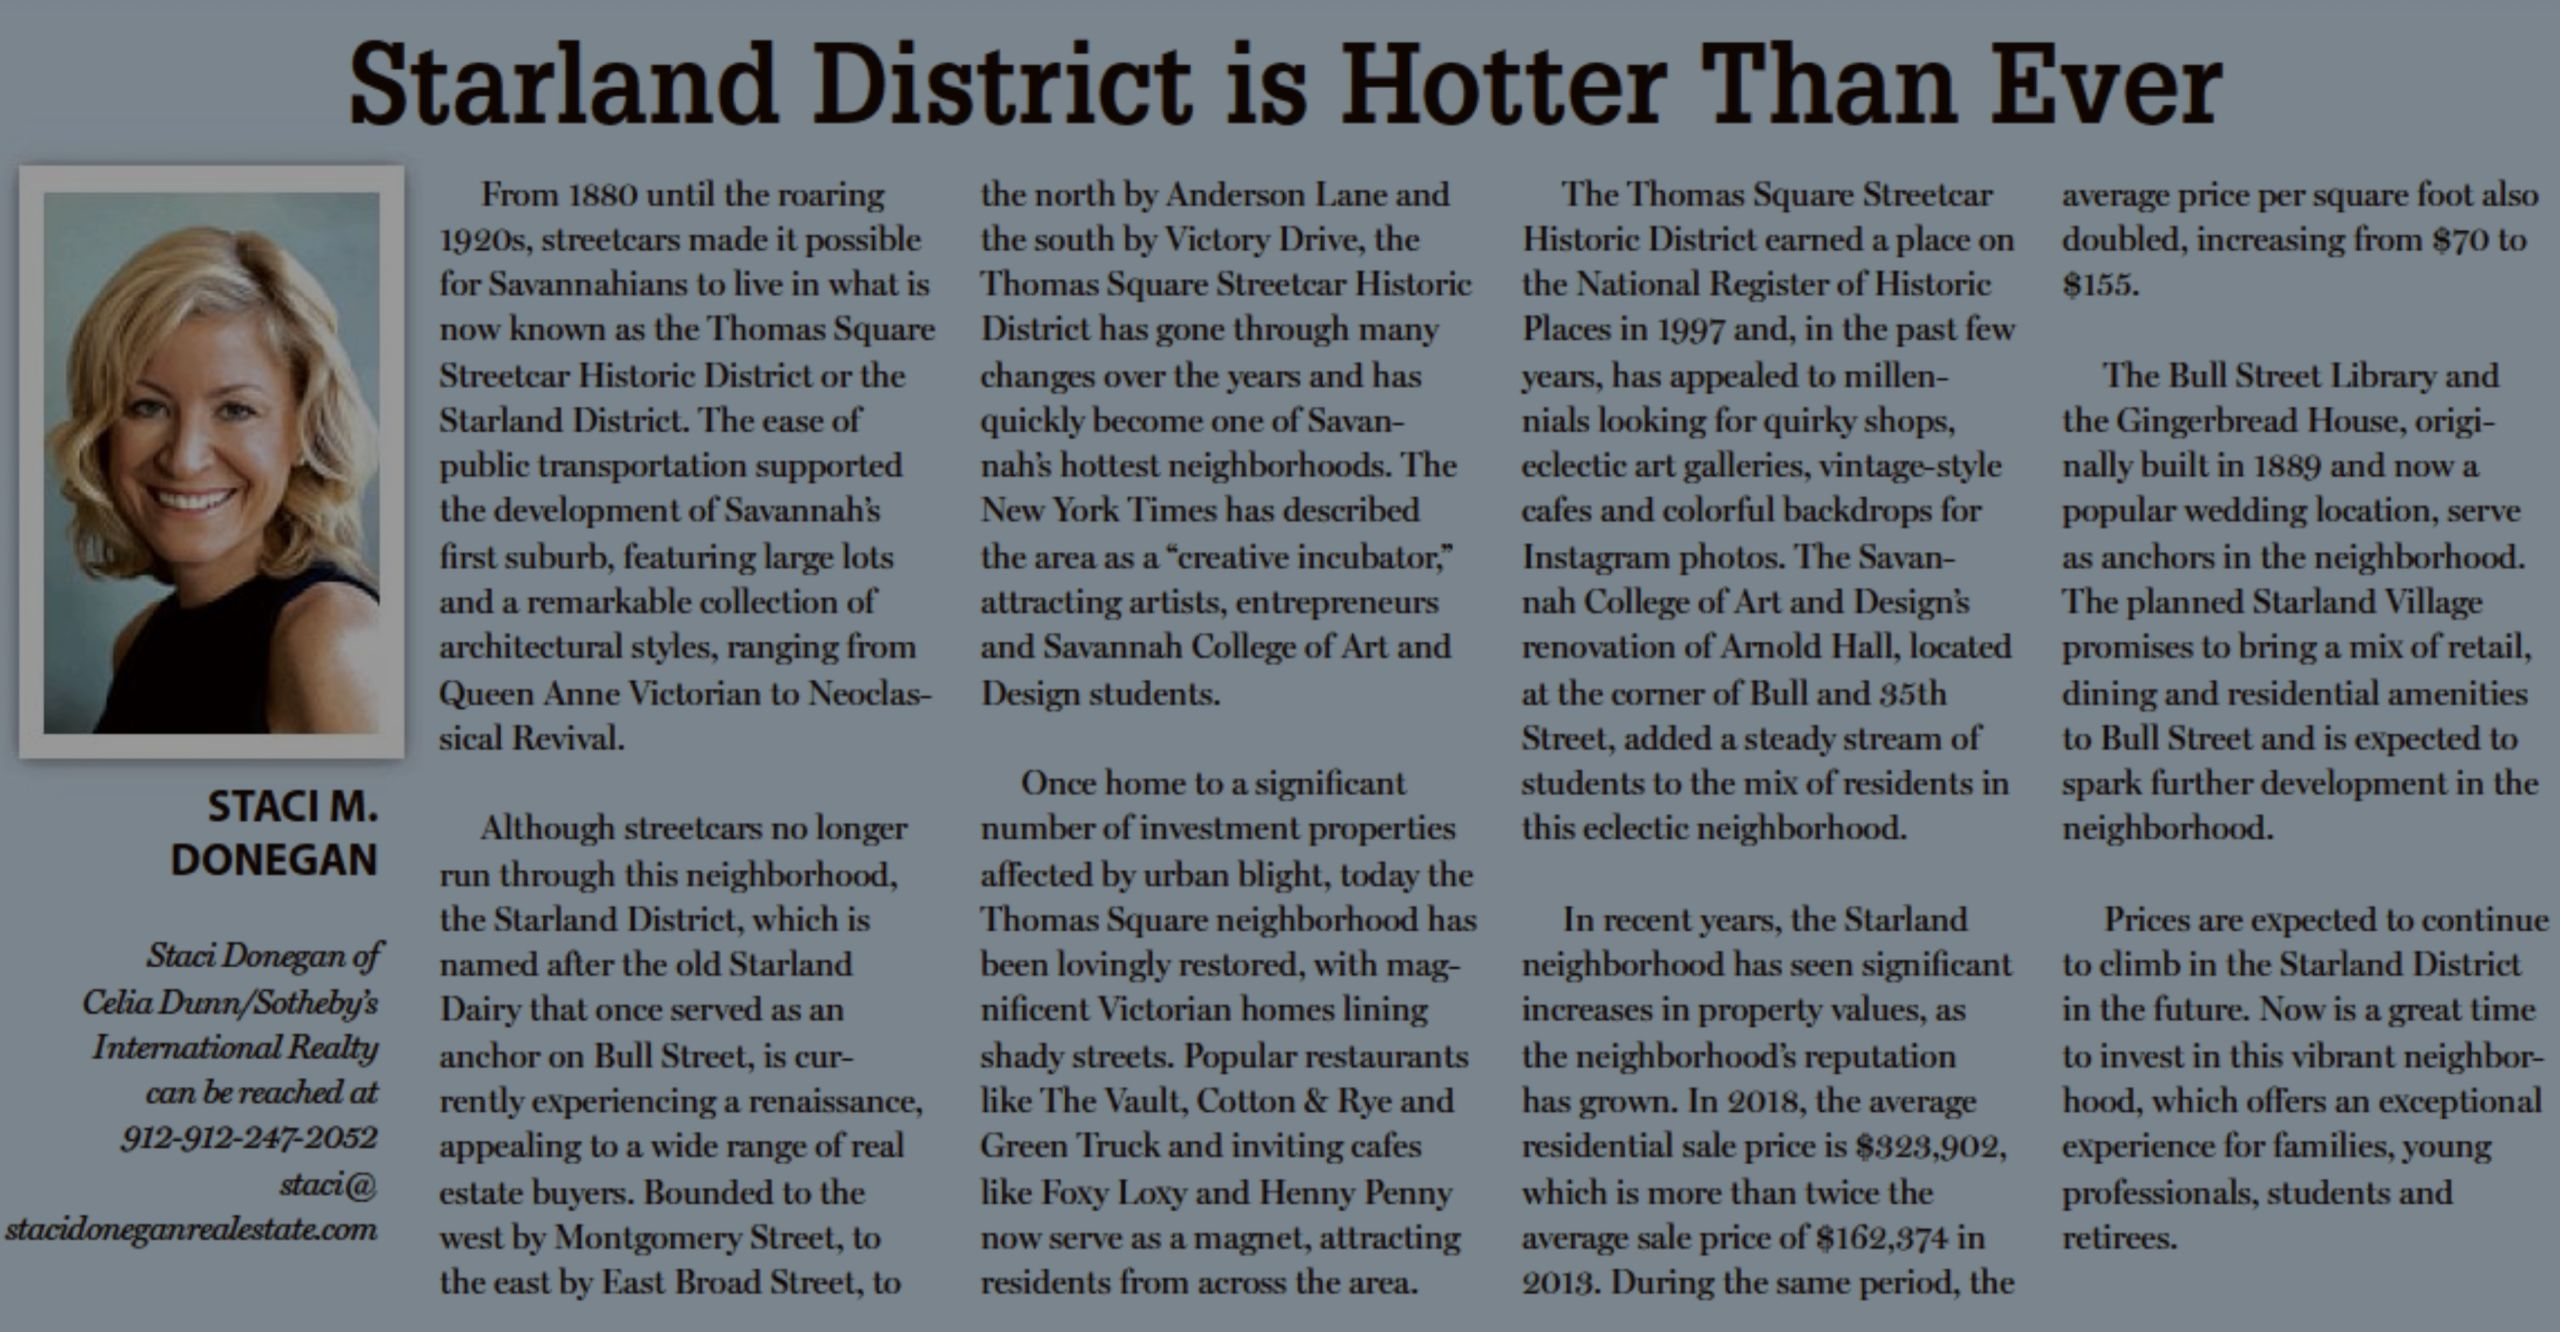 Starland District is Hotter Than Ever